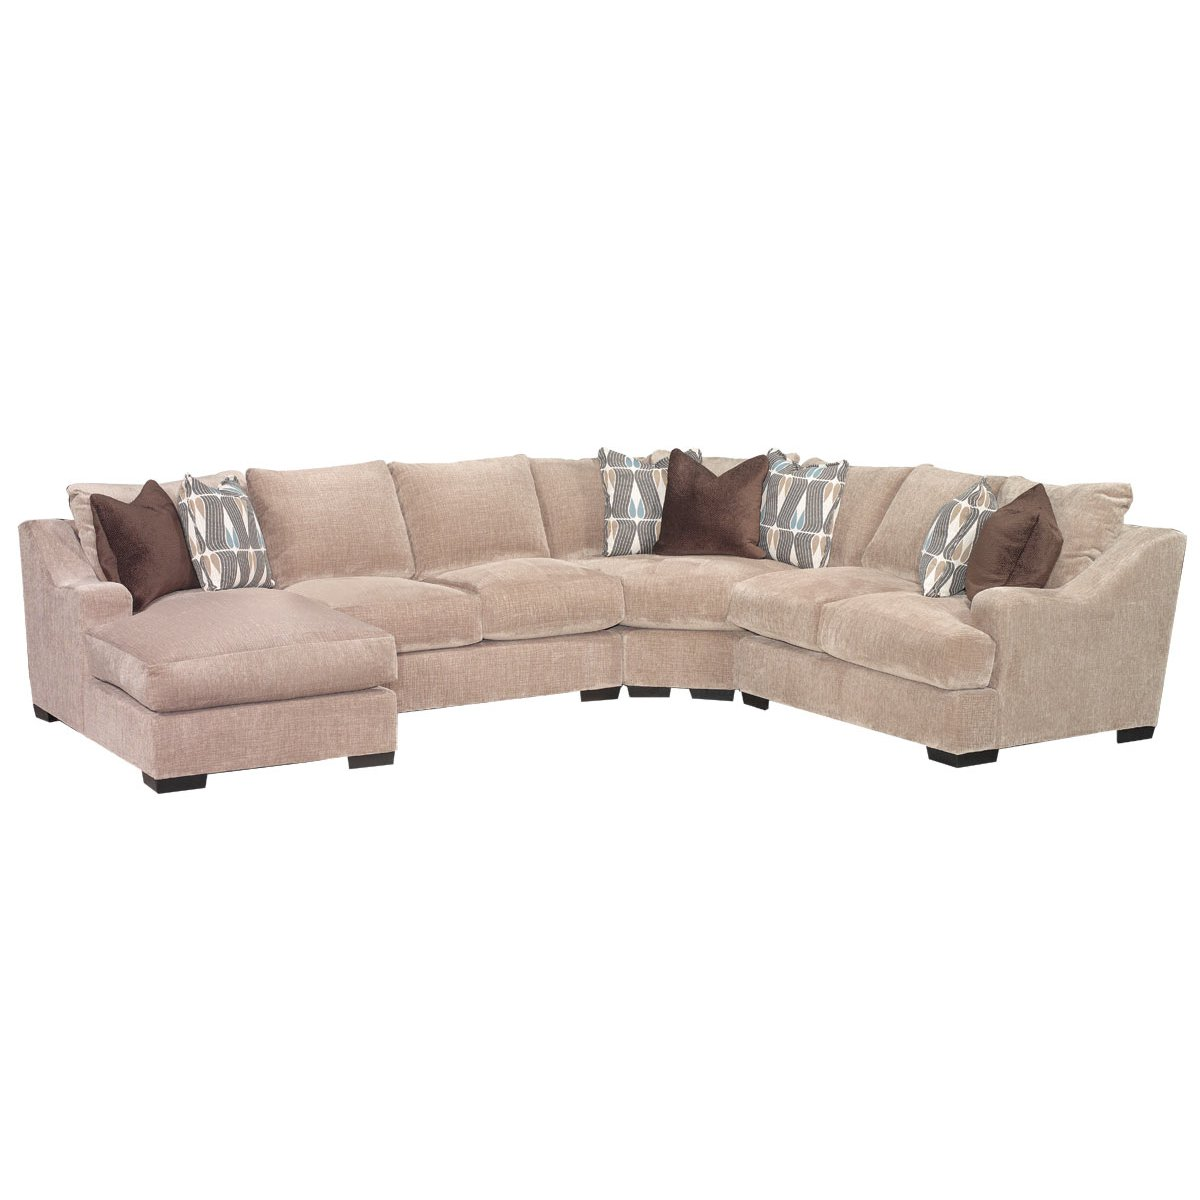 Brown Casual Classic 4 Piece Sectional Sofa   Monarch